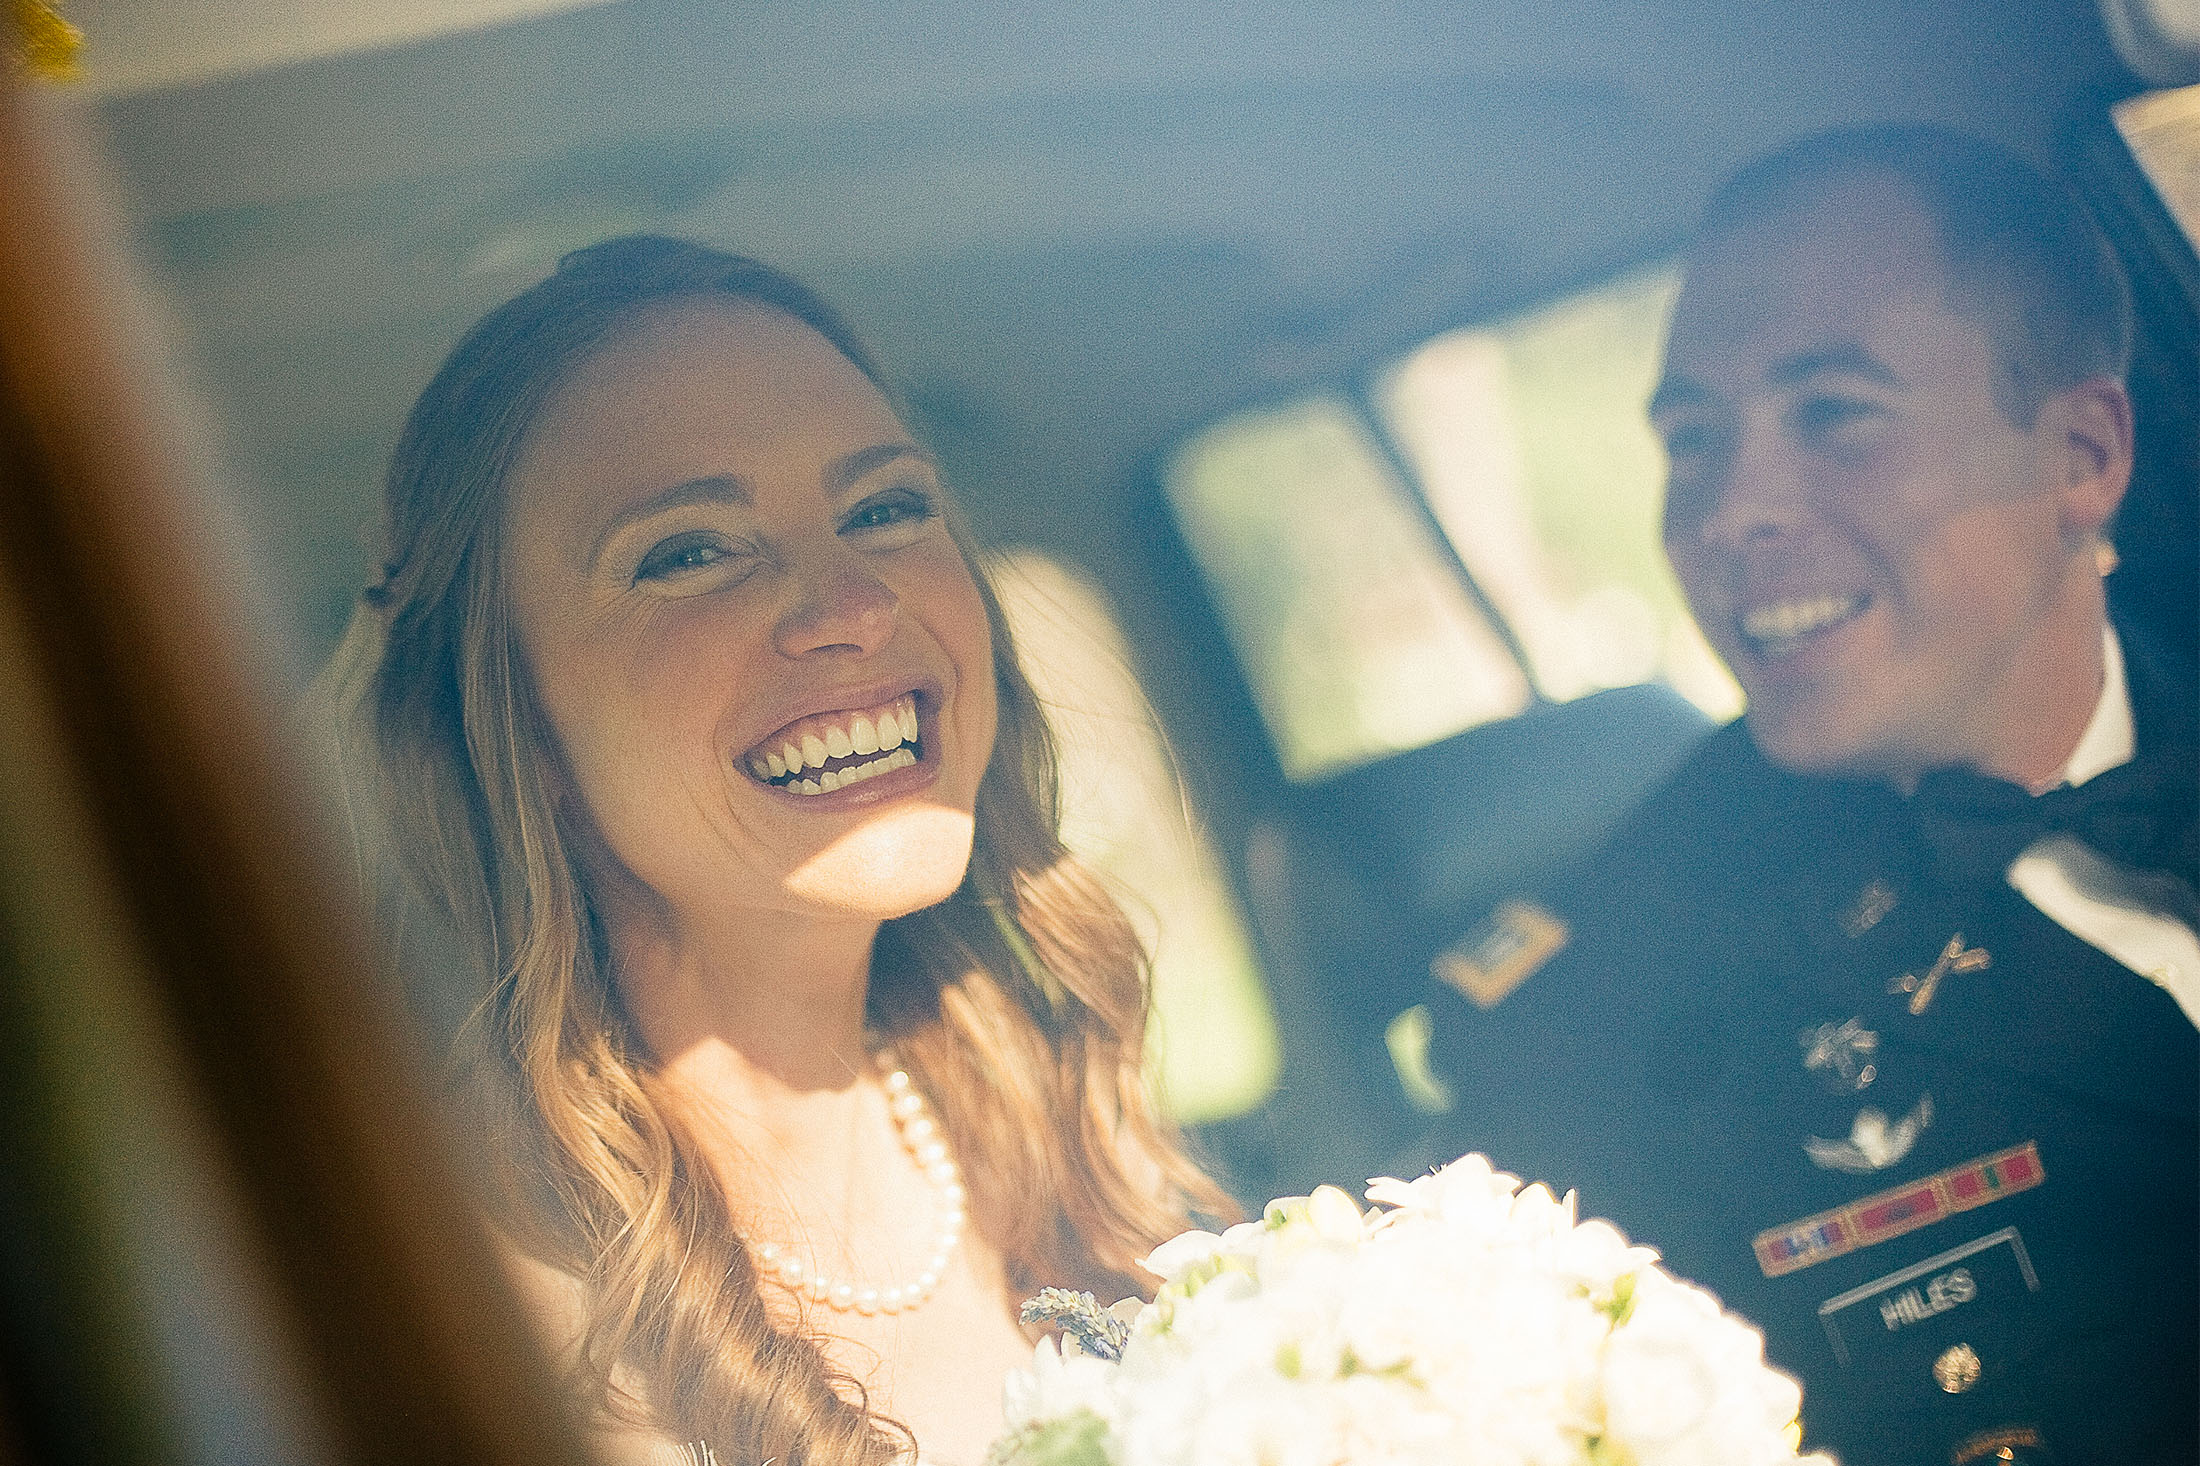 Bride with groom smile together inside a Toyota Landcruiser as they depart their wedding ceremony.